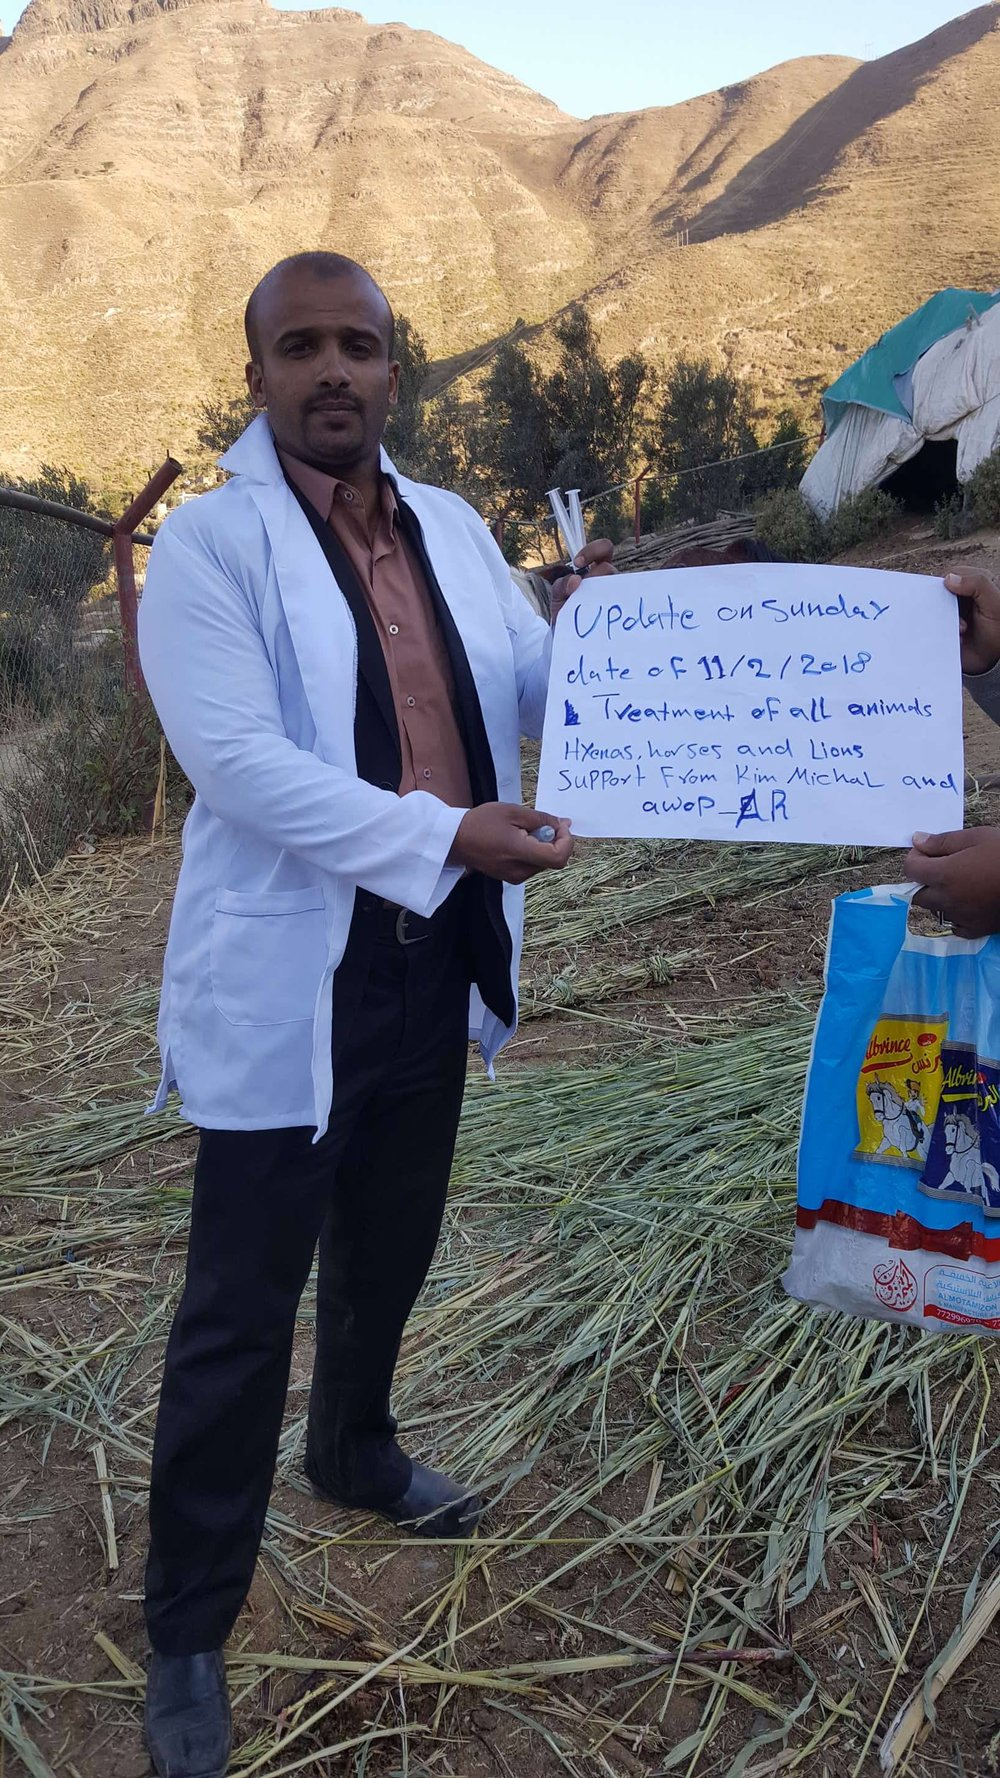 IBB ZOO rescue MUAAD WITH OUR SIGN 11 FEB 2018 treatments hyenas lions, horses etc by OWAP AR .jpg